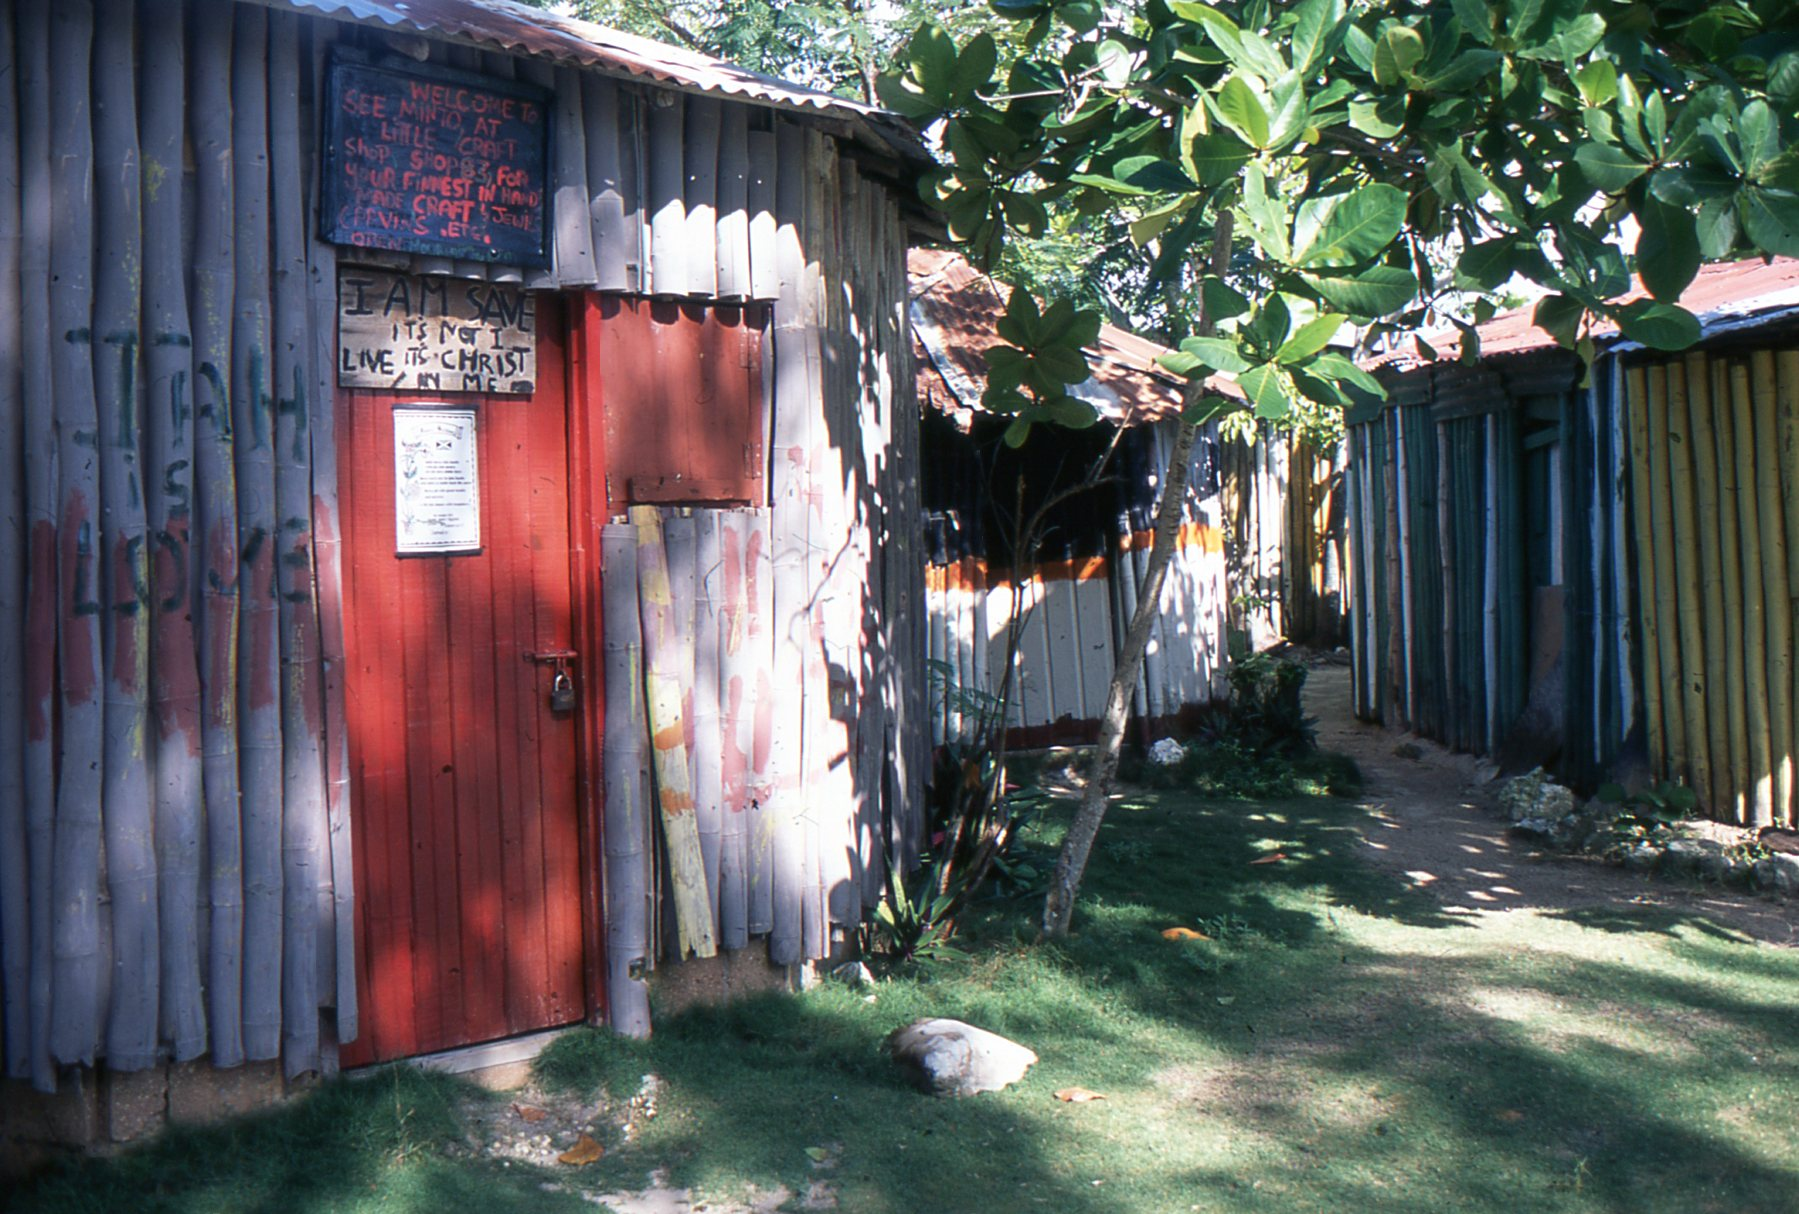 """Along Jamaica's North Coast, near Cooper's Pen, this stall holder proclaims """"It is not I live, it is Christ by me,"""" as well as """"Jah is love."""""""